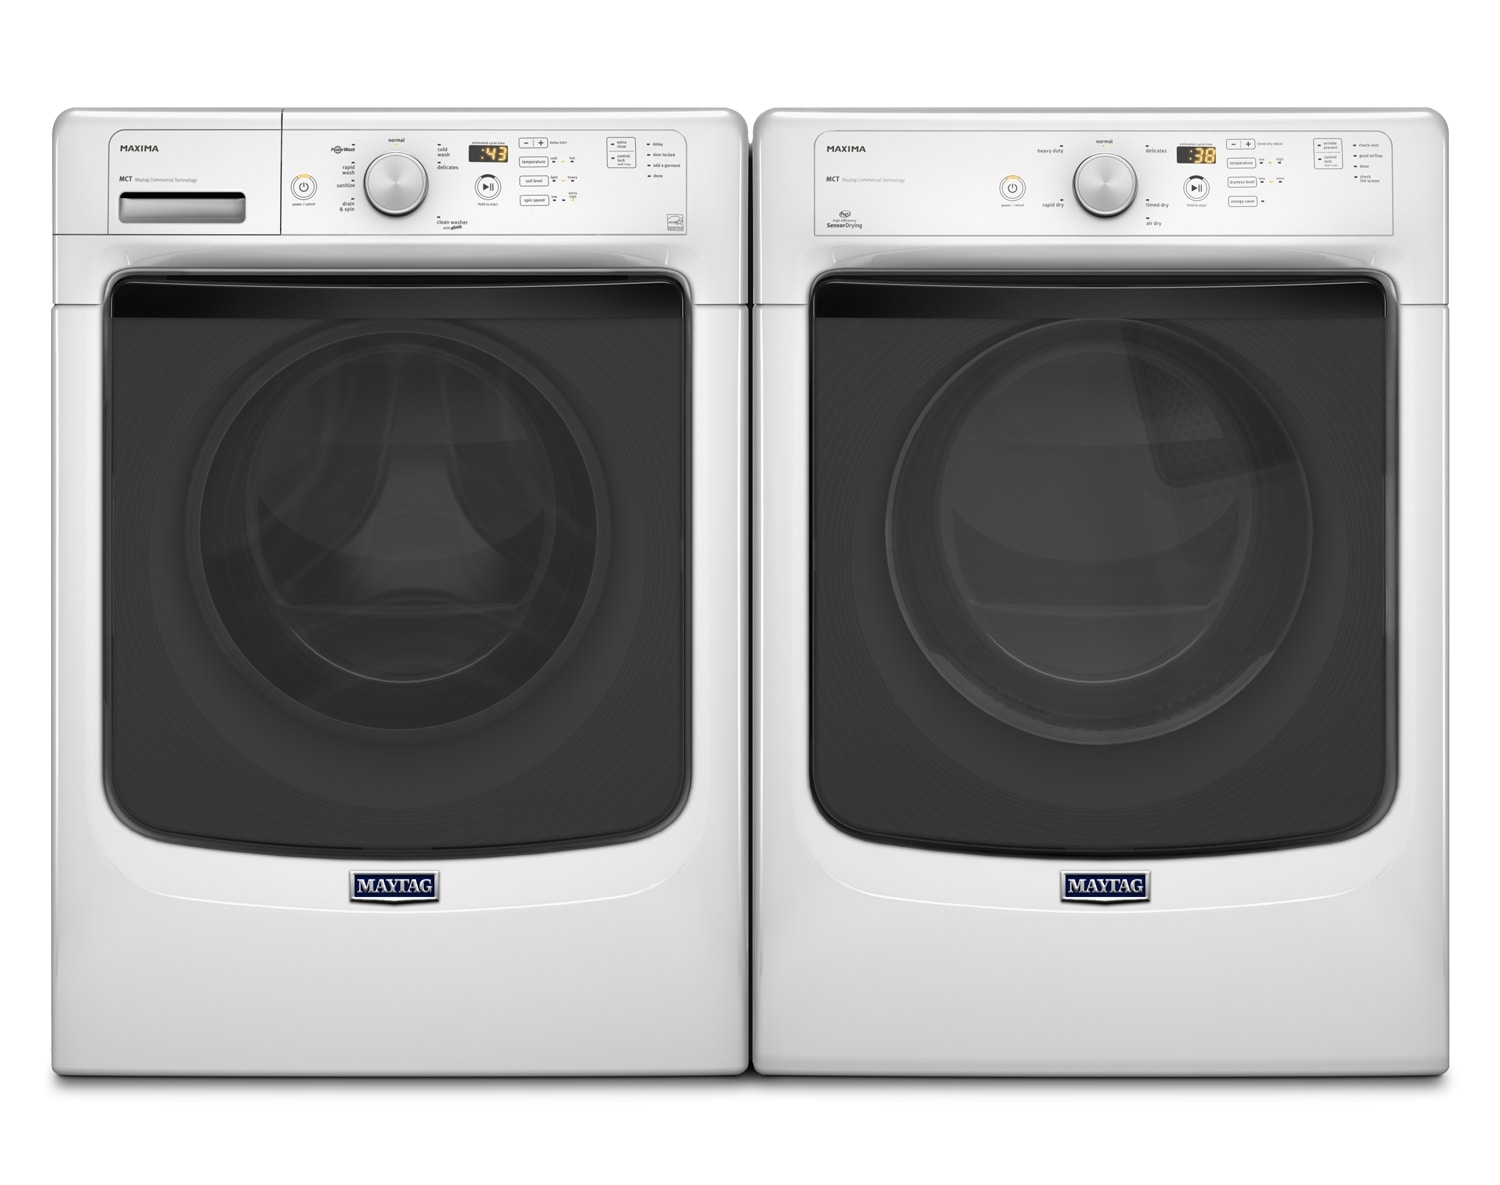 Maytag Maxima White Front-Load Laundry Pair